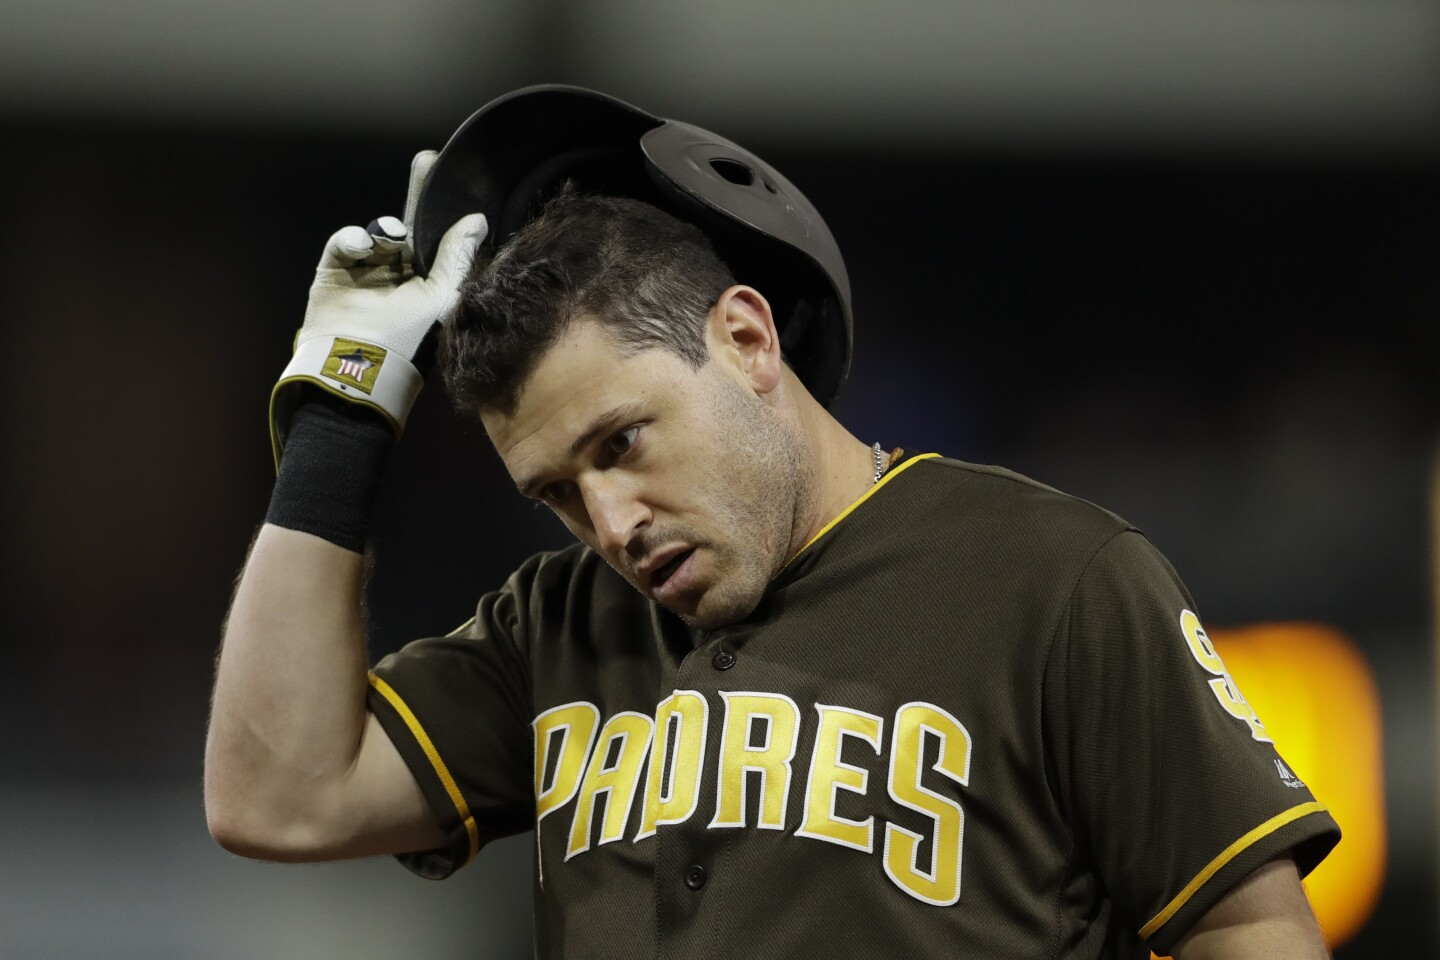 Padres on deck: D-backs back in town